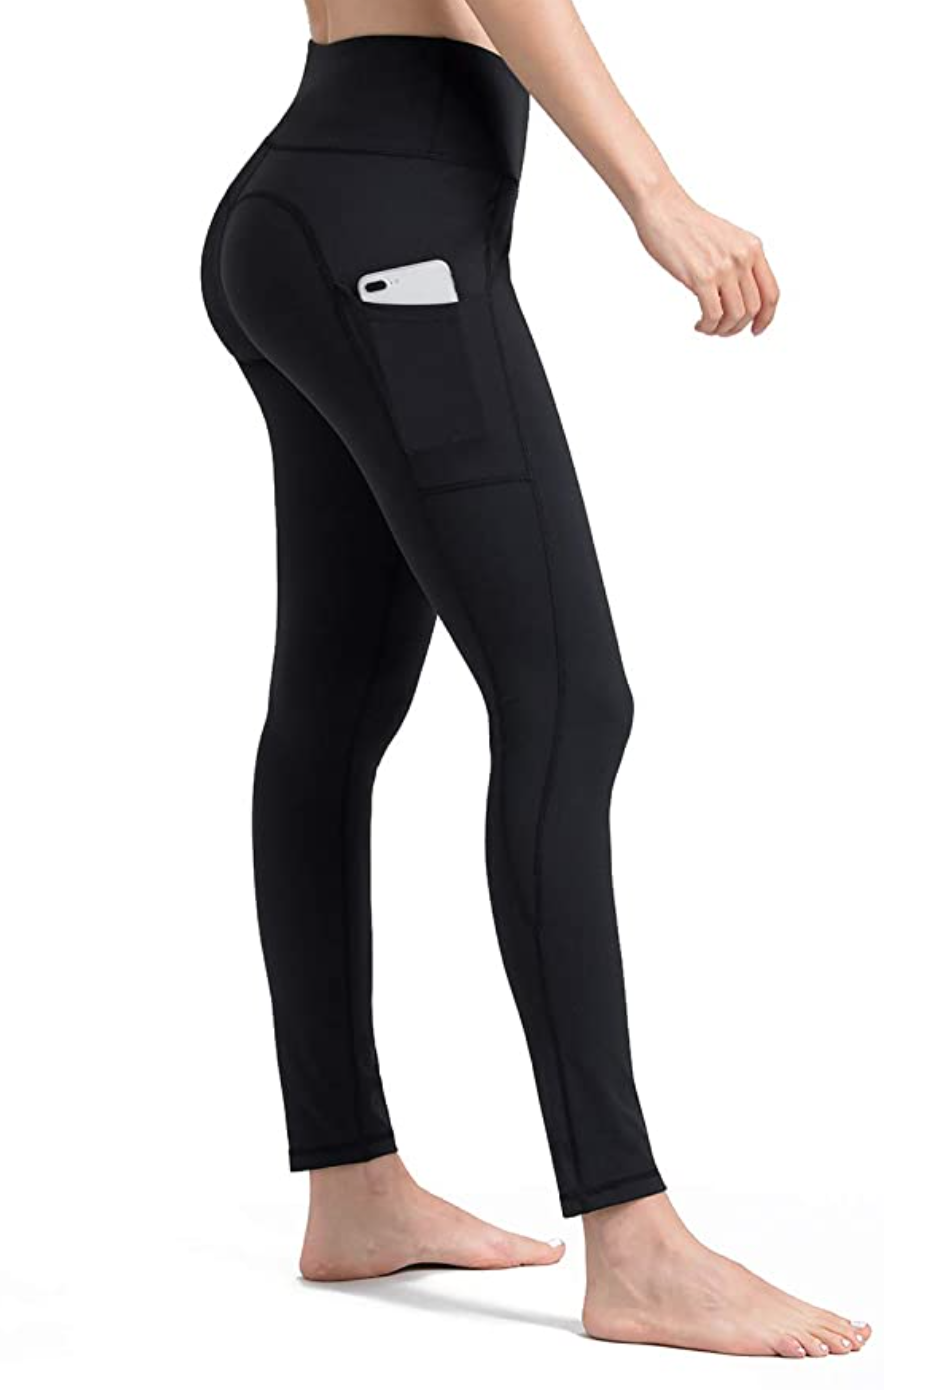 Along Fit Yoga Pants in Black (Photo via Amazon)